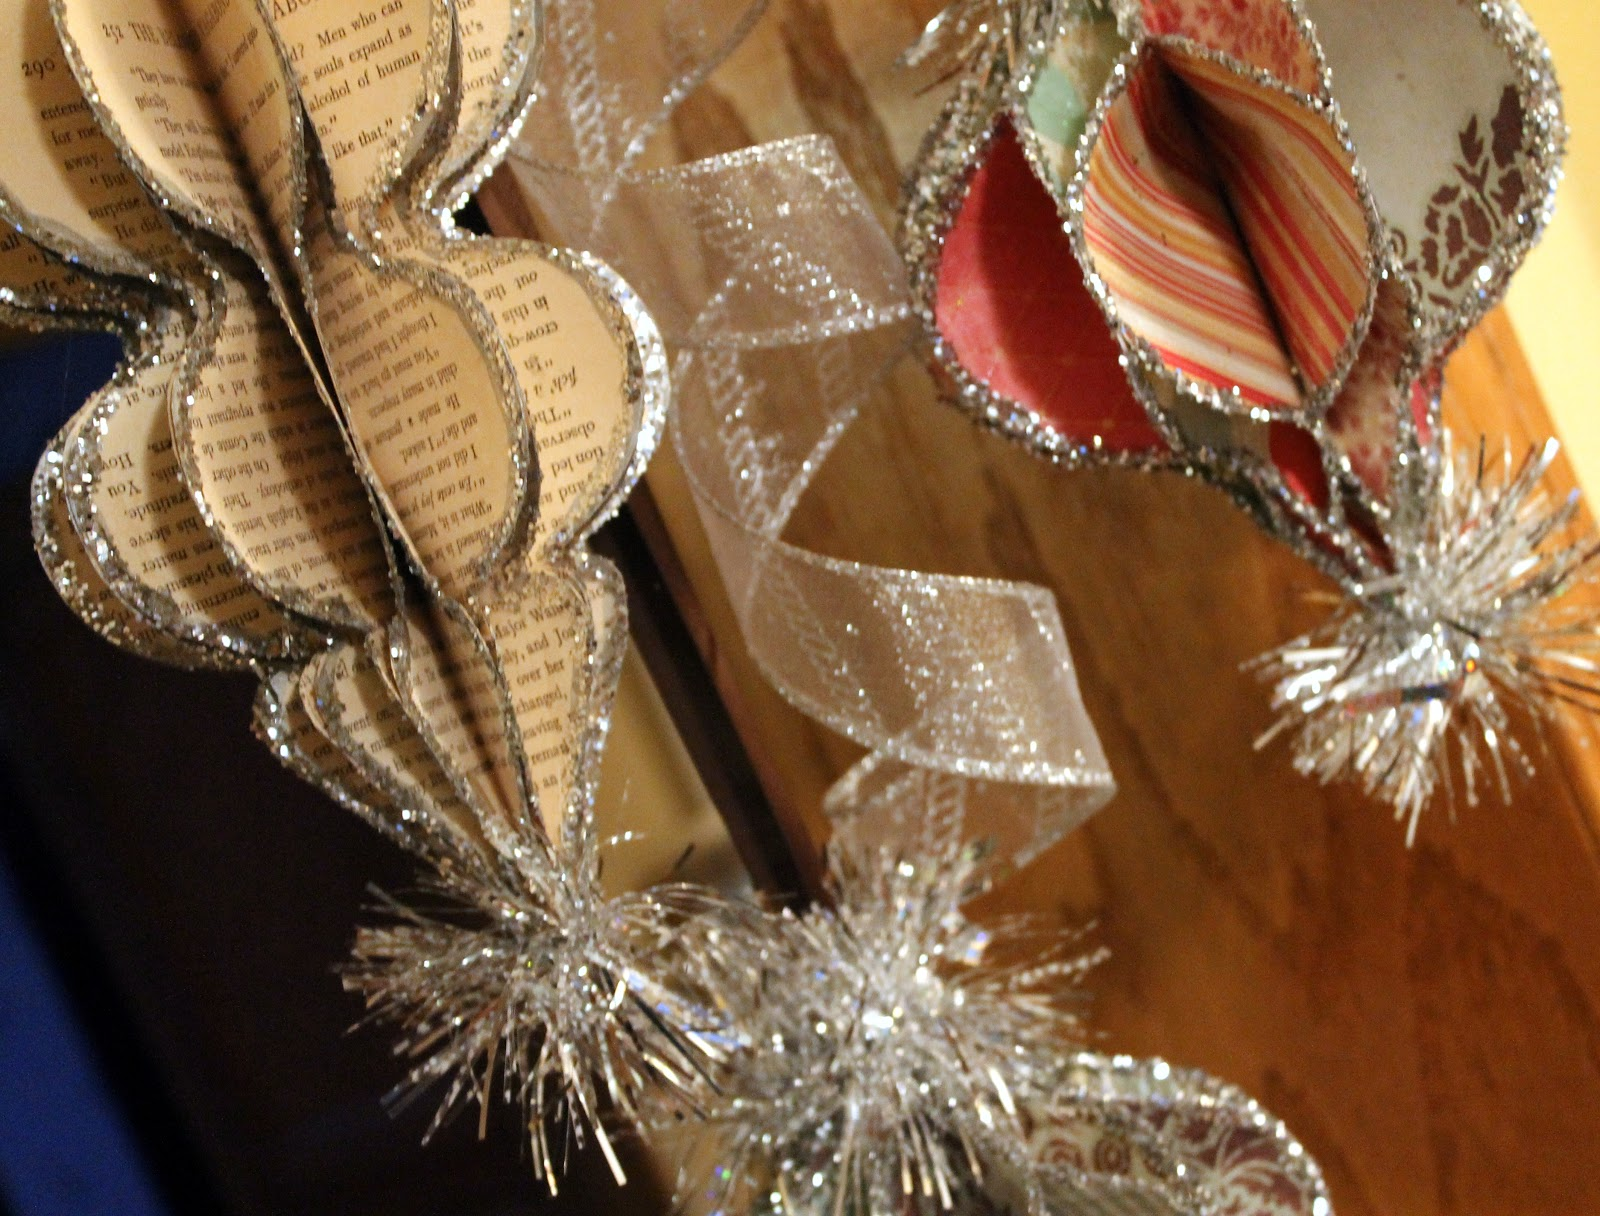 How to make scrapbook vintage - Honeycomb Christmas Ornaments From Vintage Book Pages Scrapbook Paper